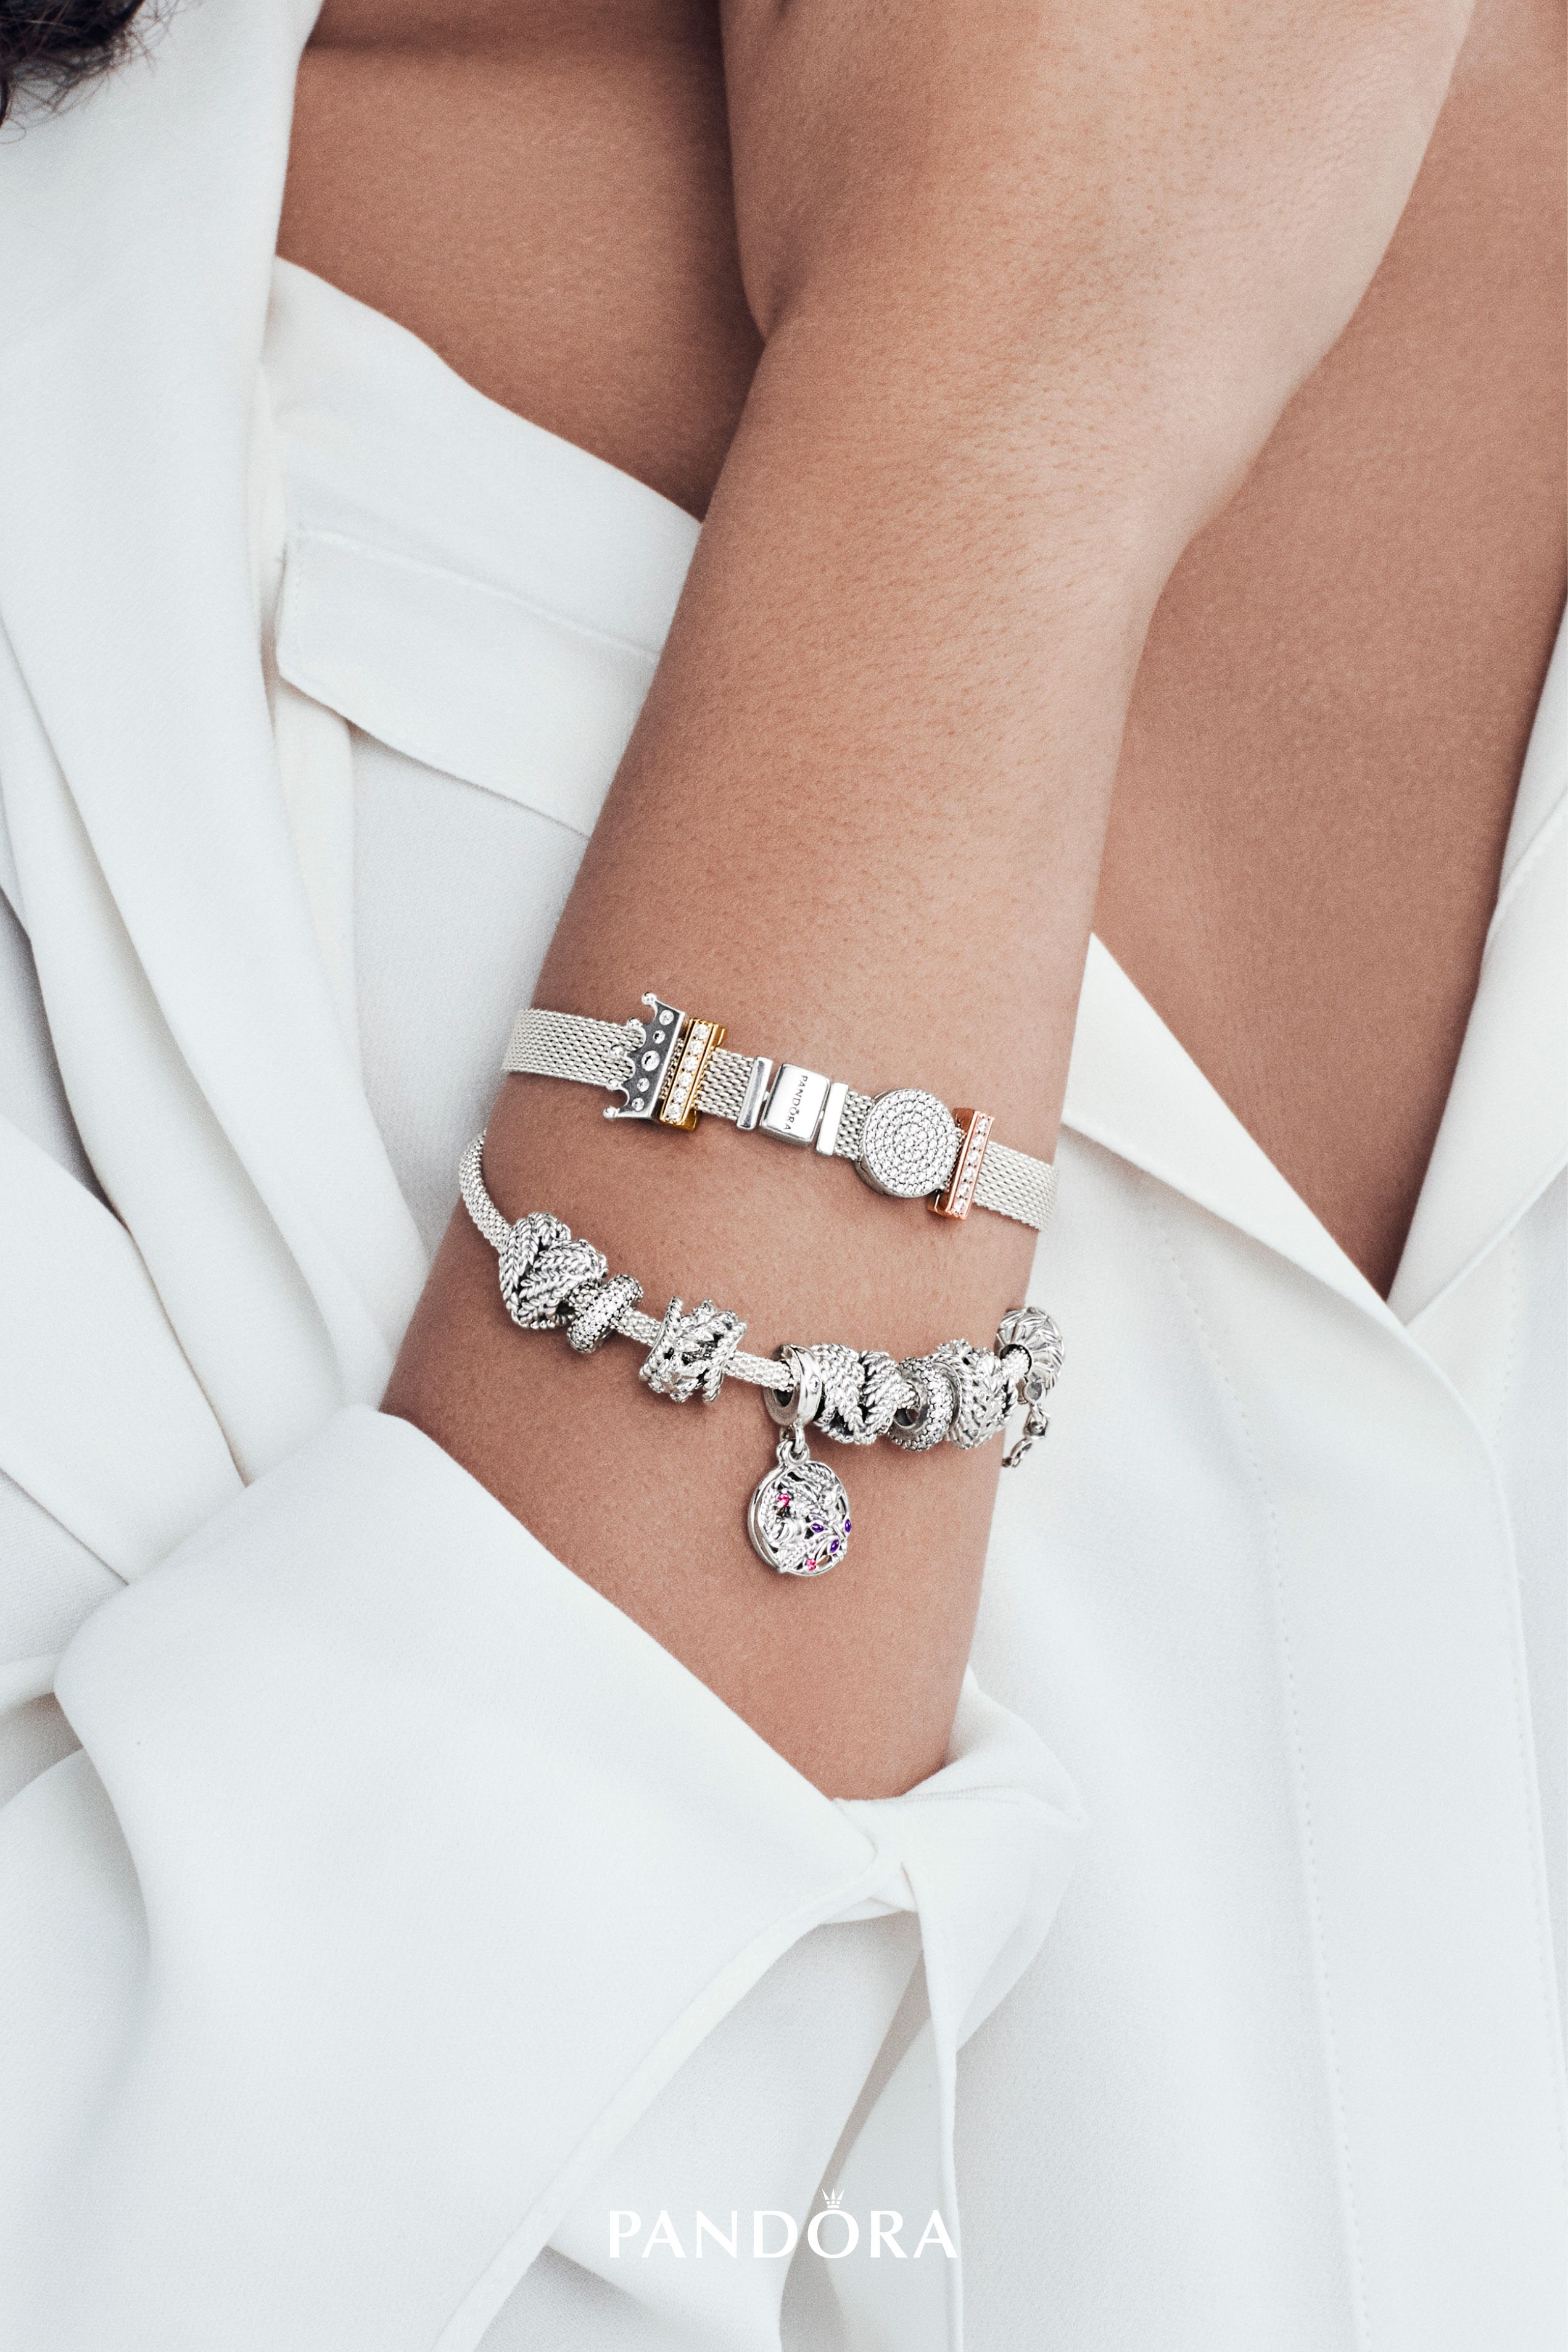 dff383b71 Create unique looks that reflect your personal style with our new # PANDORAReflexions collection of bracelets